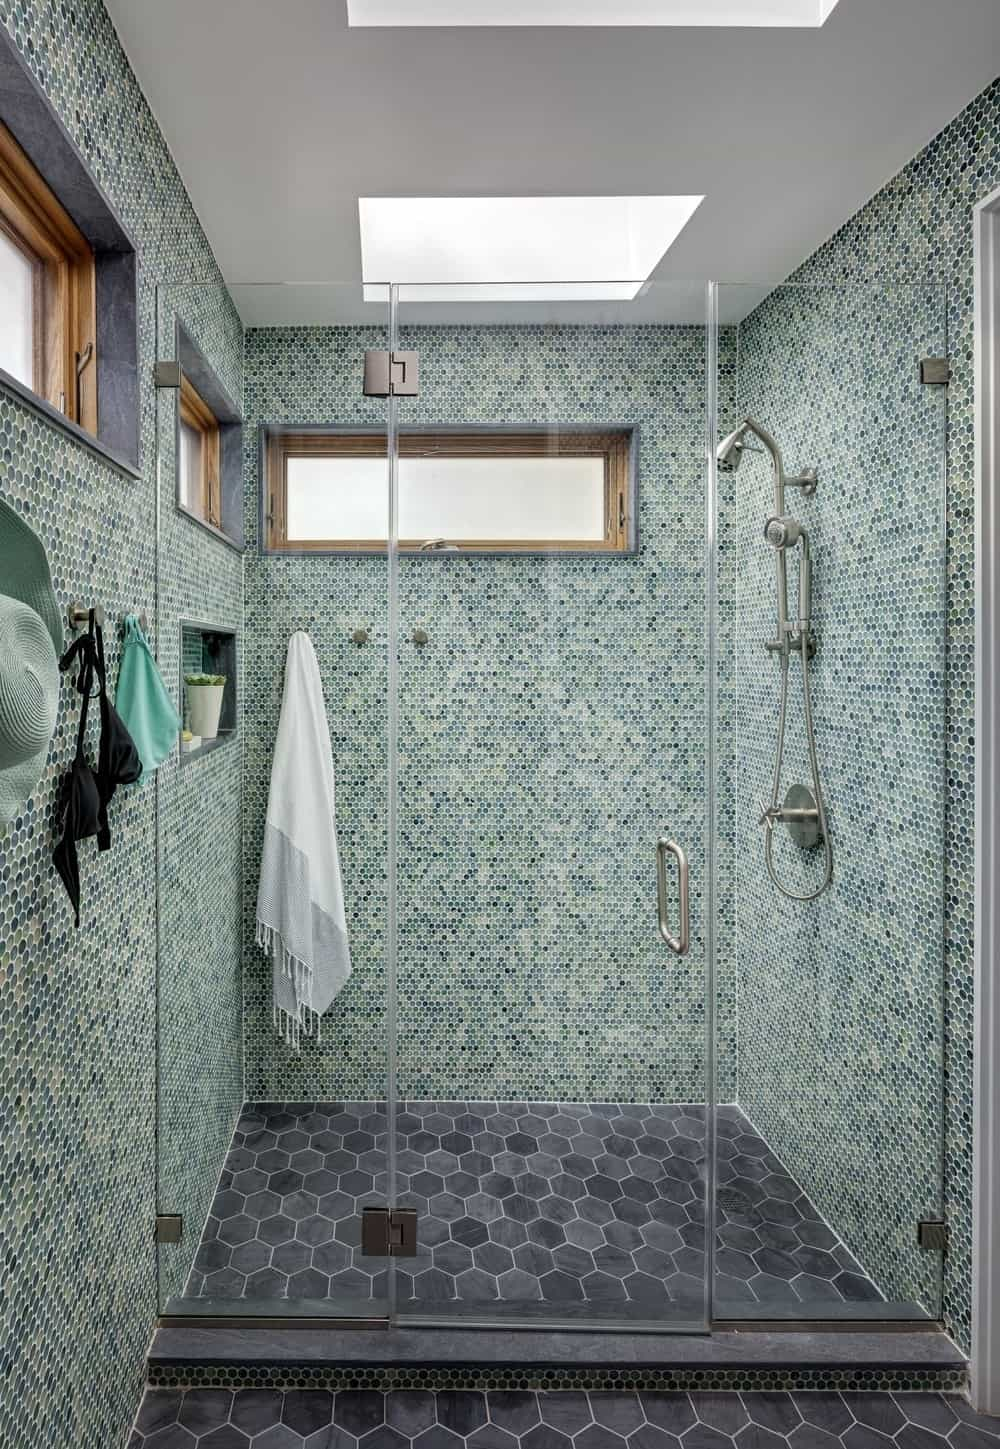 A focused shot at this primary bathroom's walk-in shower surrounded by stylish green walls and black tiles flooring.